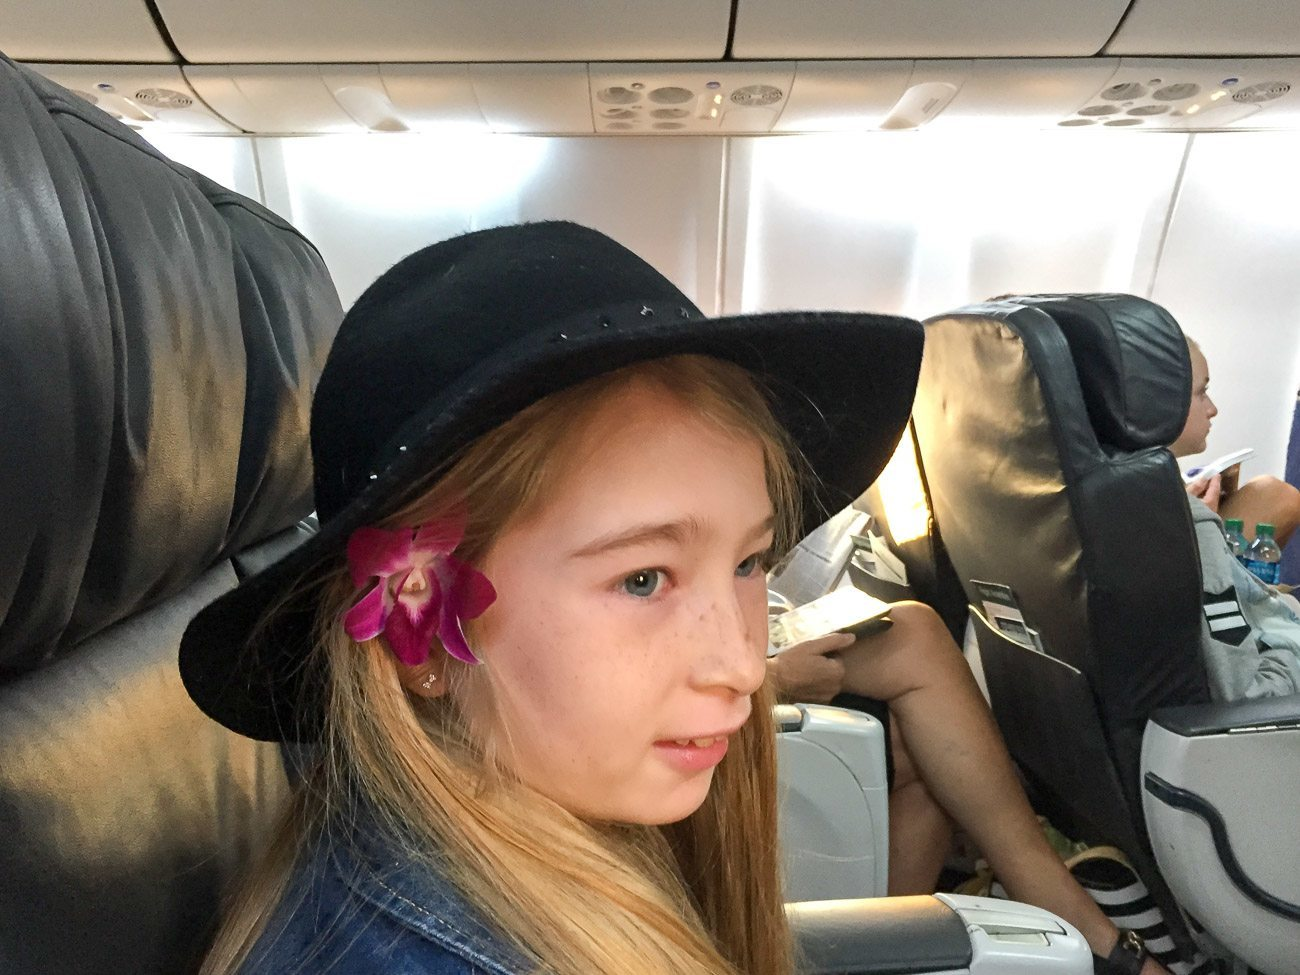 The Alaska Airlines flight attendants placed flowers in the ears of children on board before take-off.